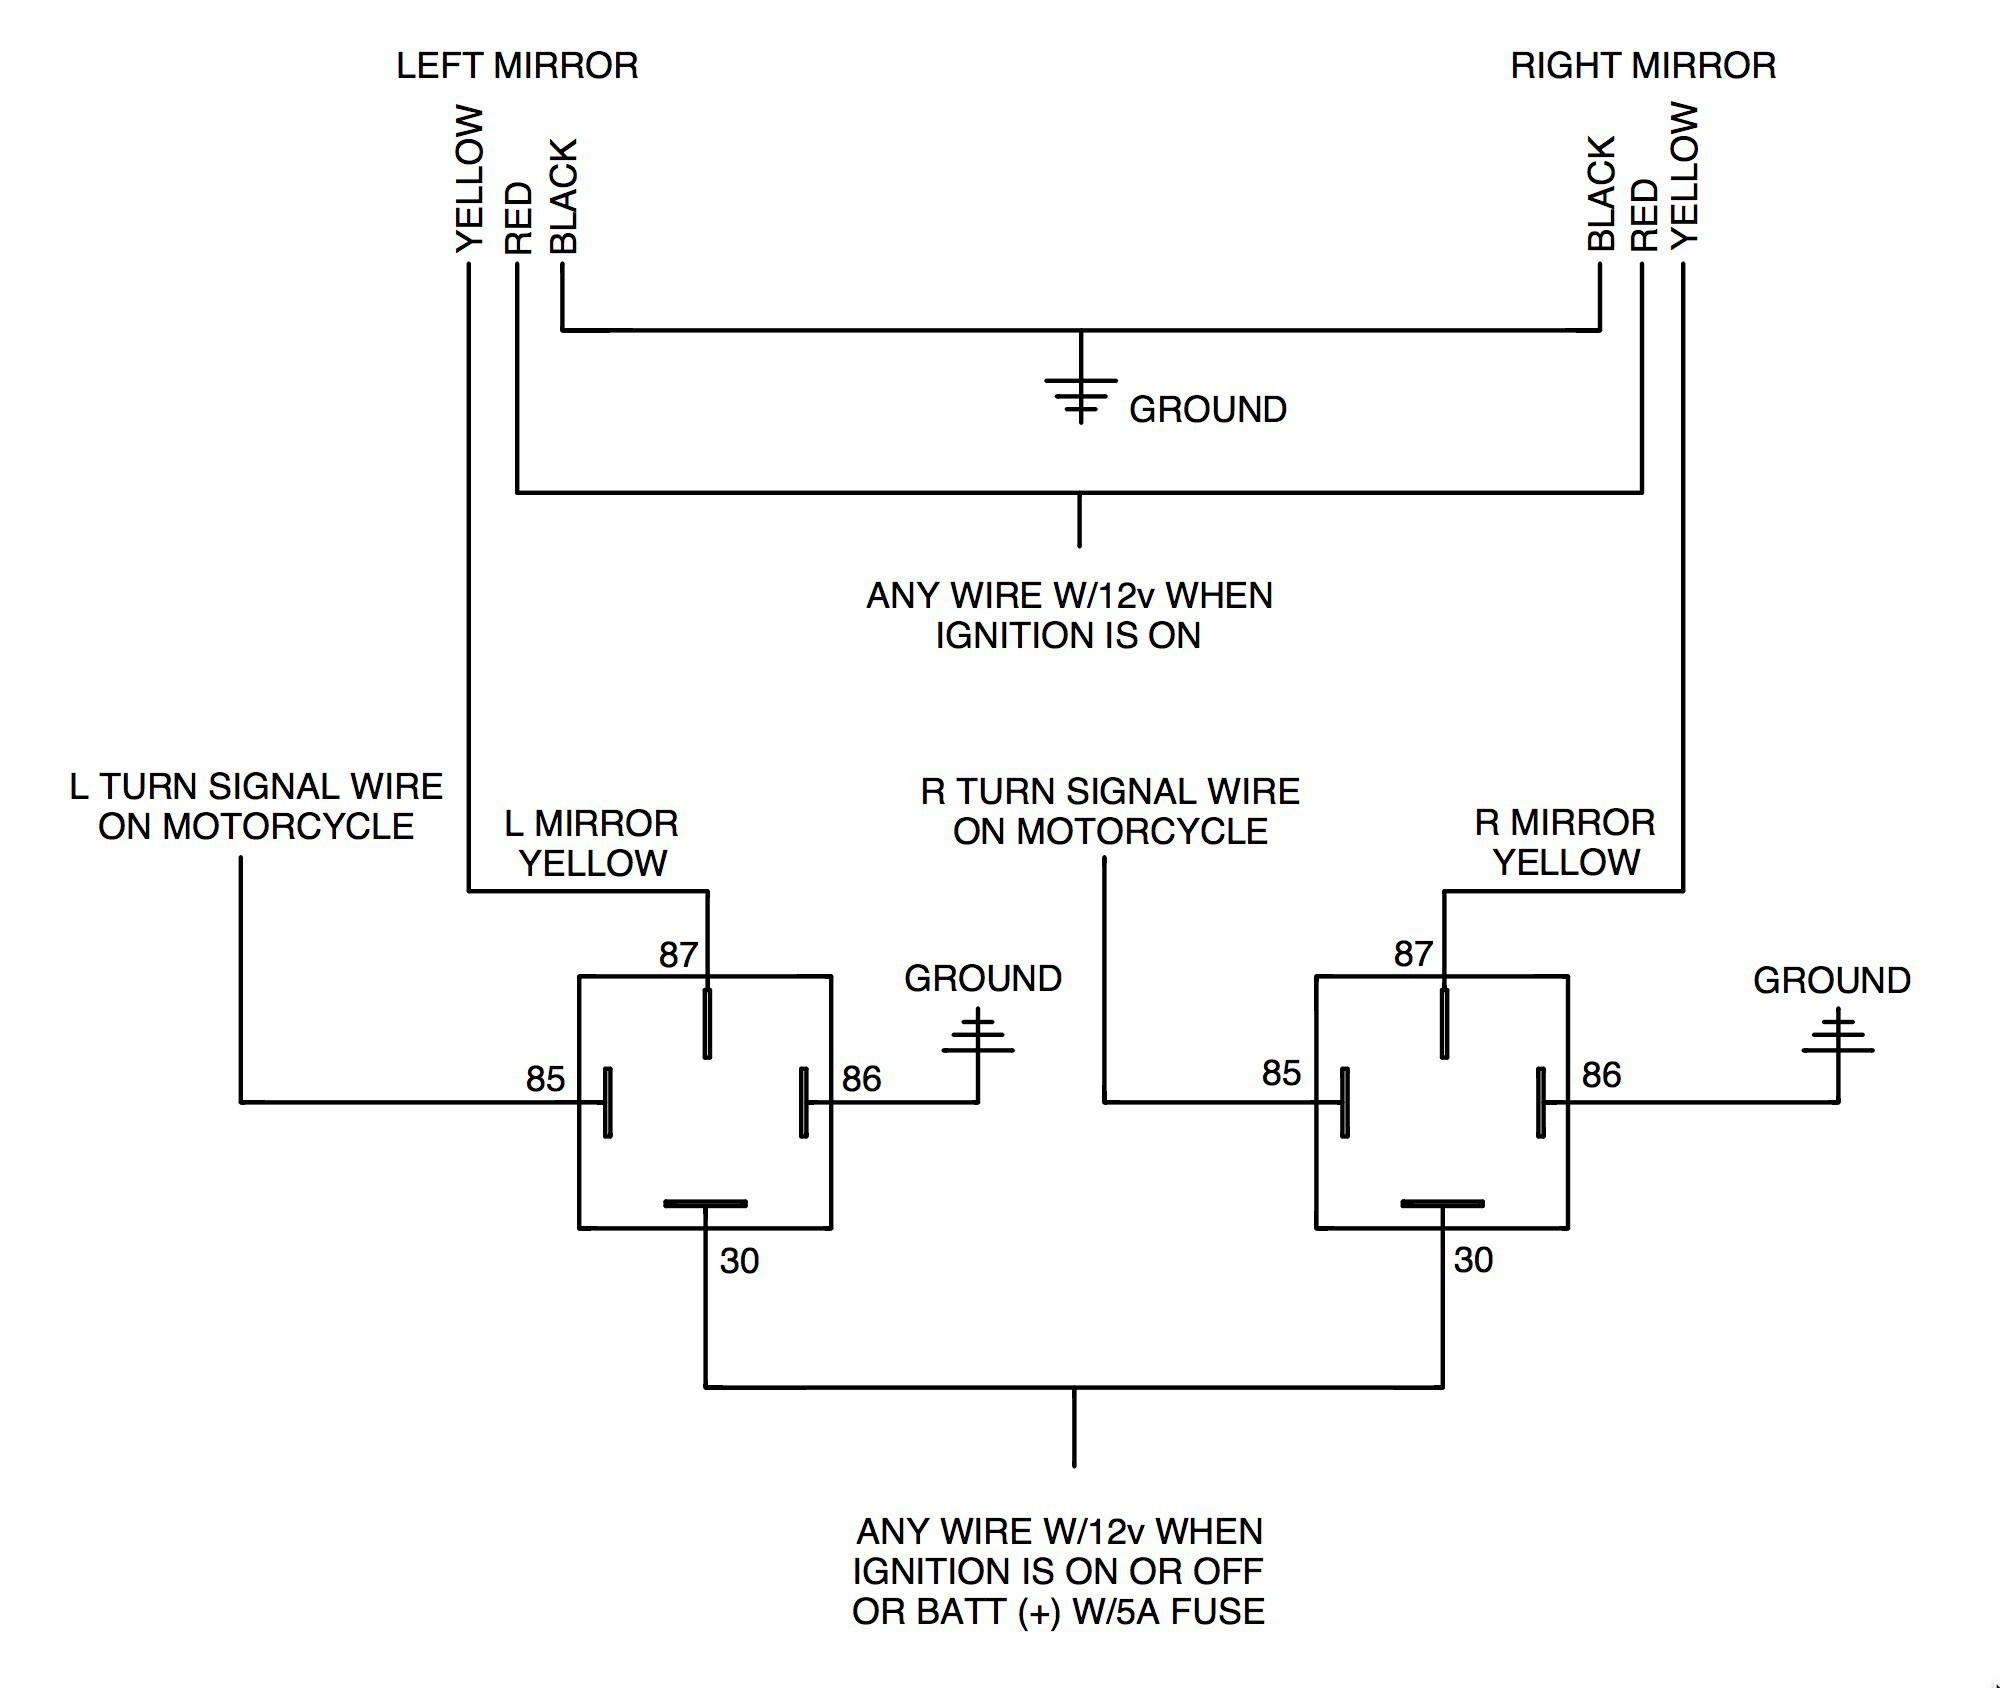 Motorcycle Light Switch Wiring Diagram : Basic stop light wiring diagram trailer brake breakaway